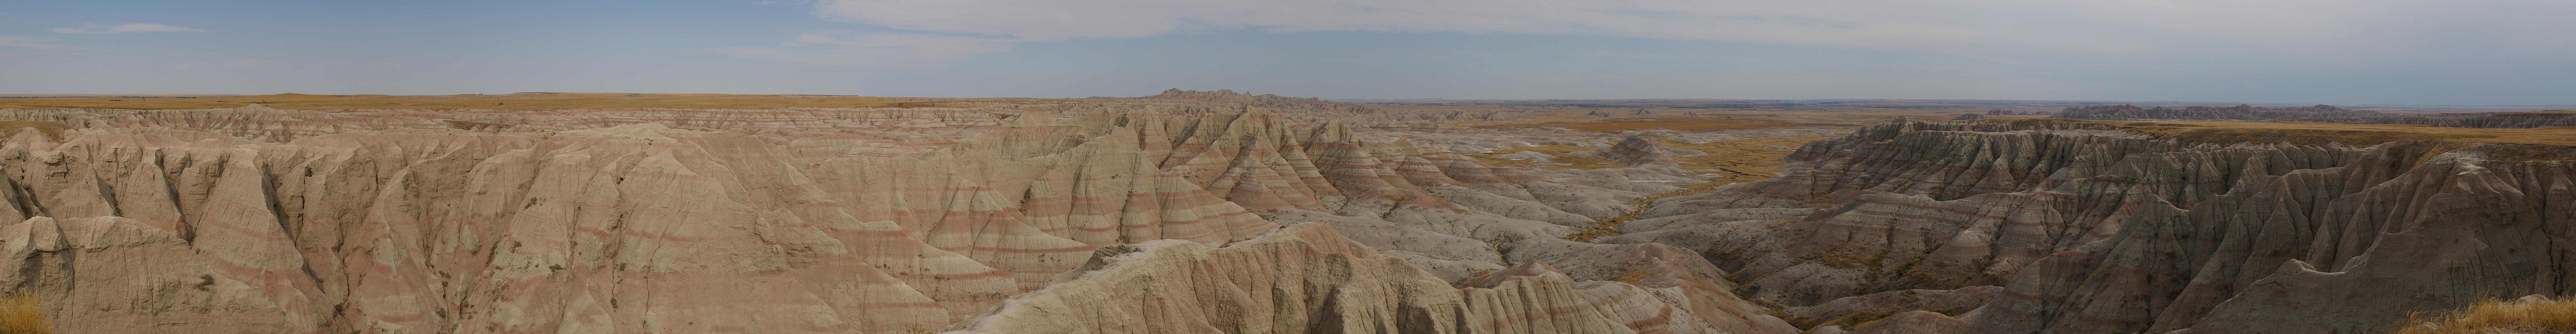 panoramic_badlands_pano13_crop_180.jpg